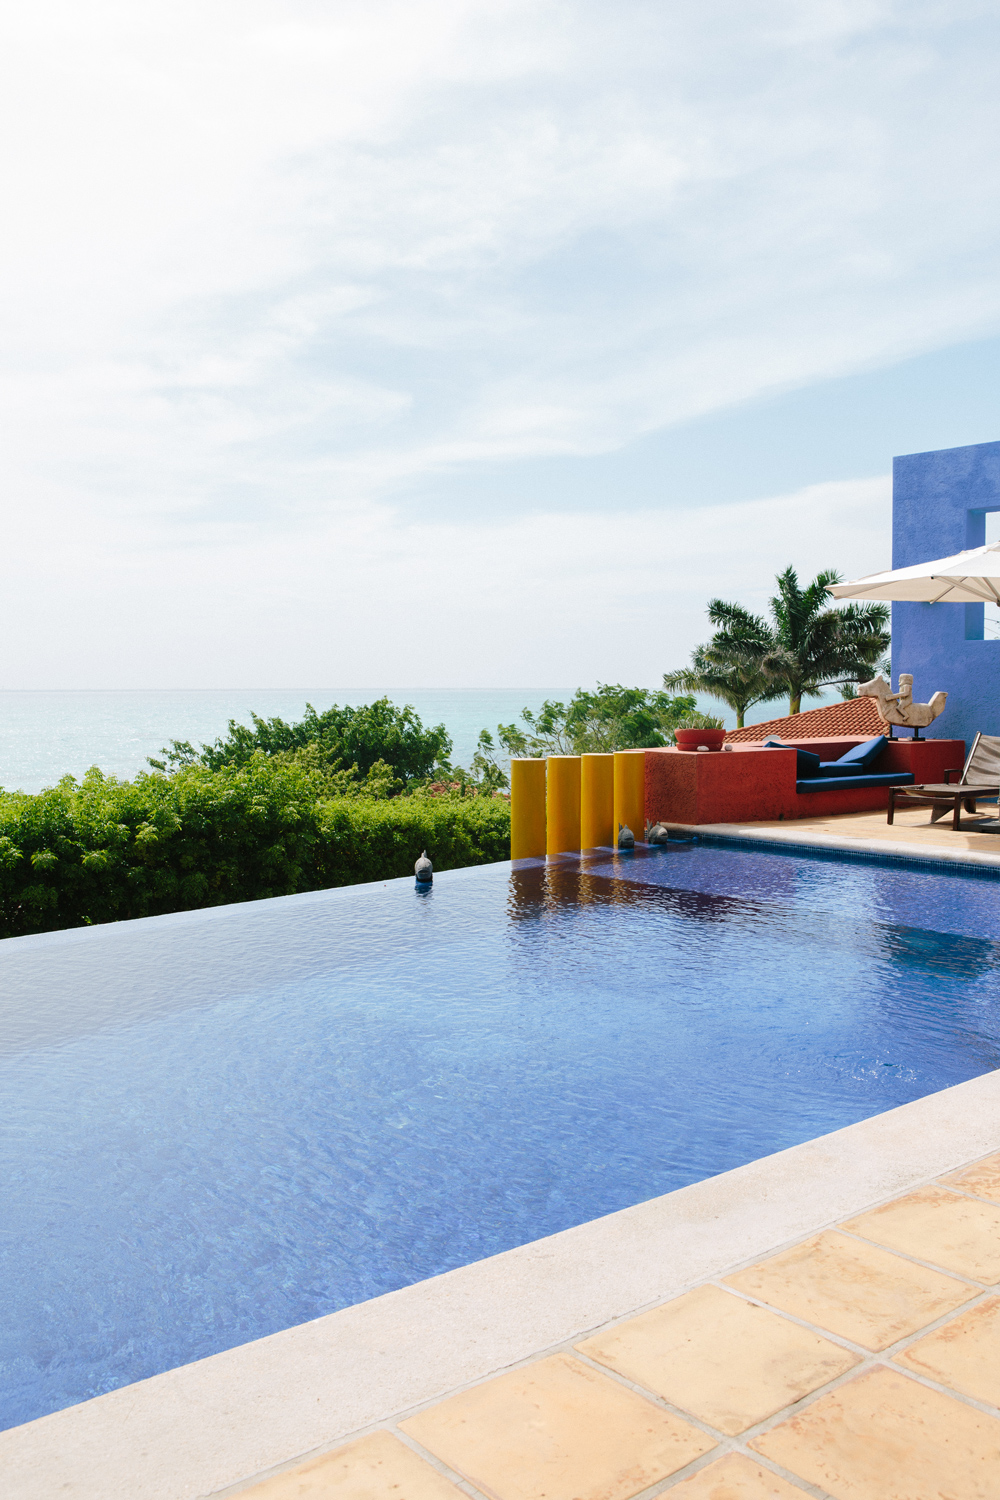 Whats a boutique hotel without an infinity pool?